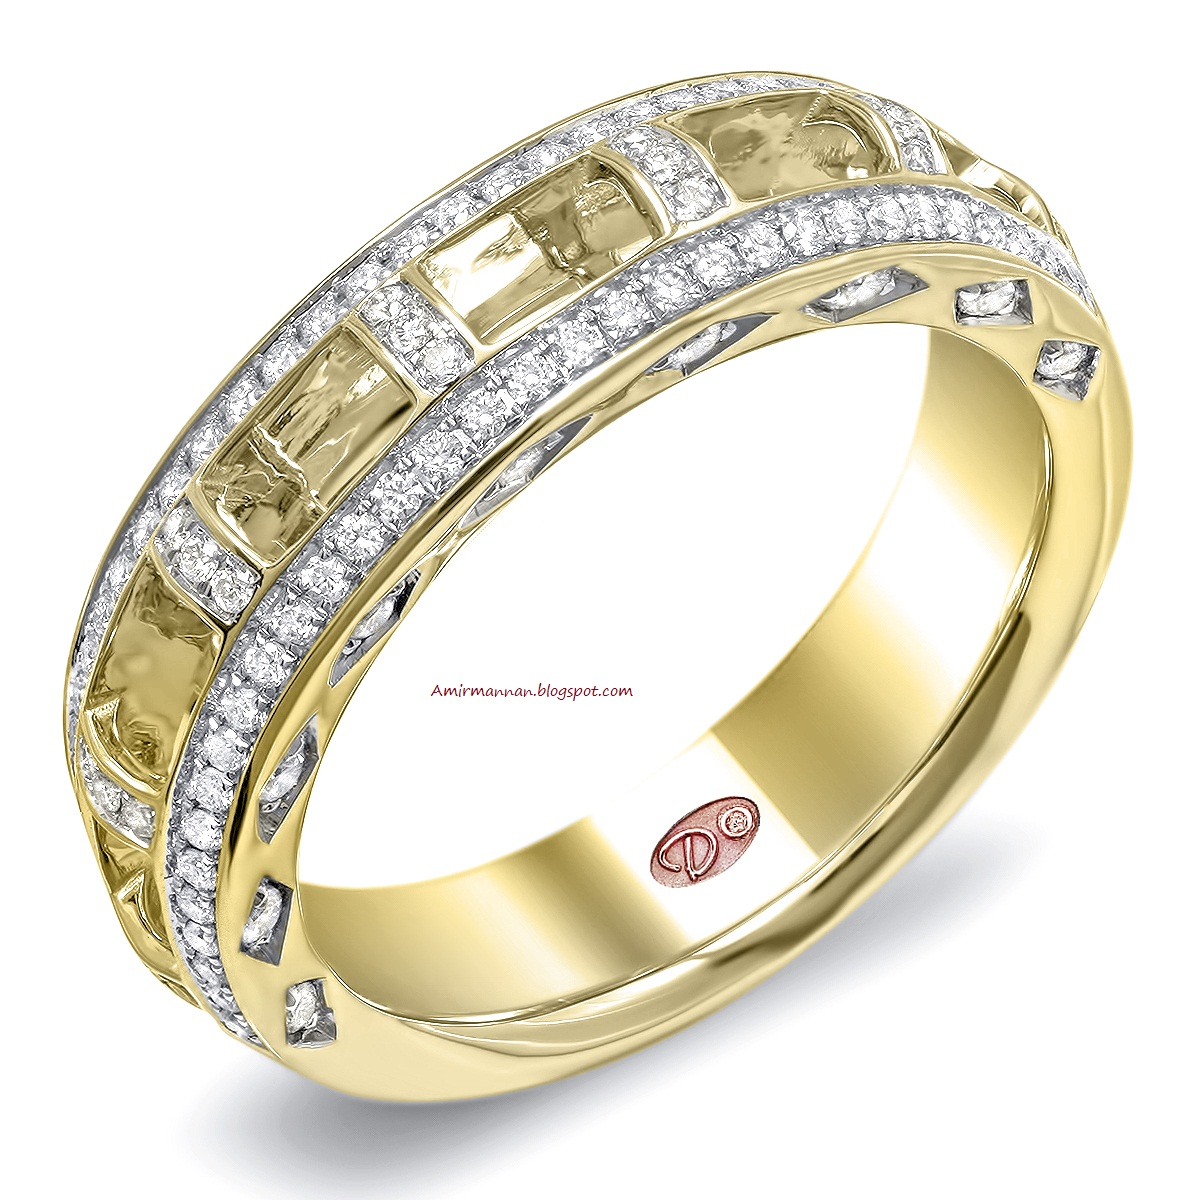 Engagement ring gents diamond engagement wedding ring 39 for Jewelry wedding rings